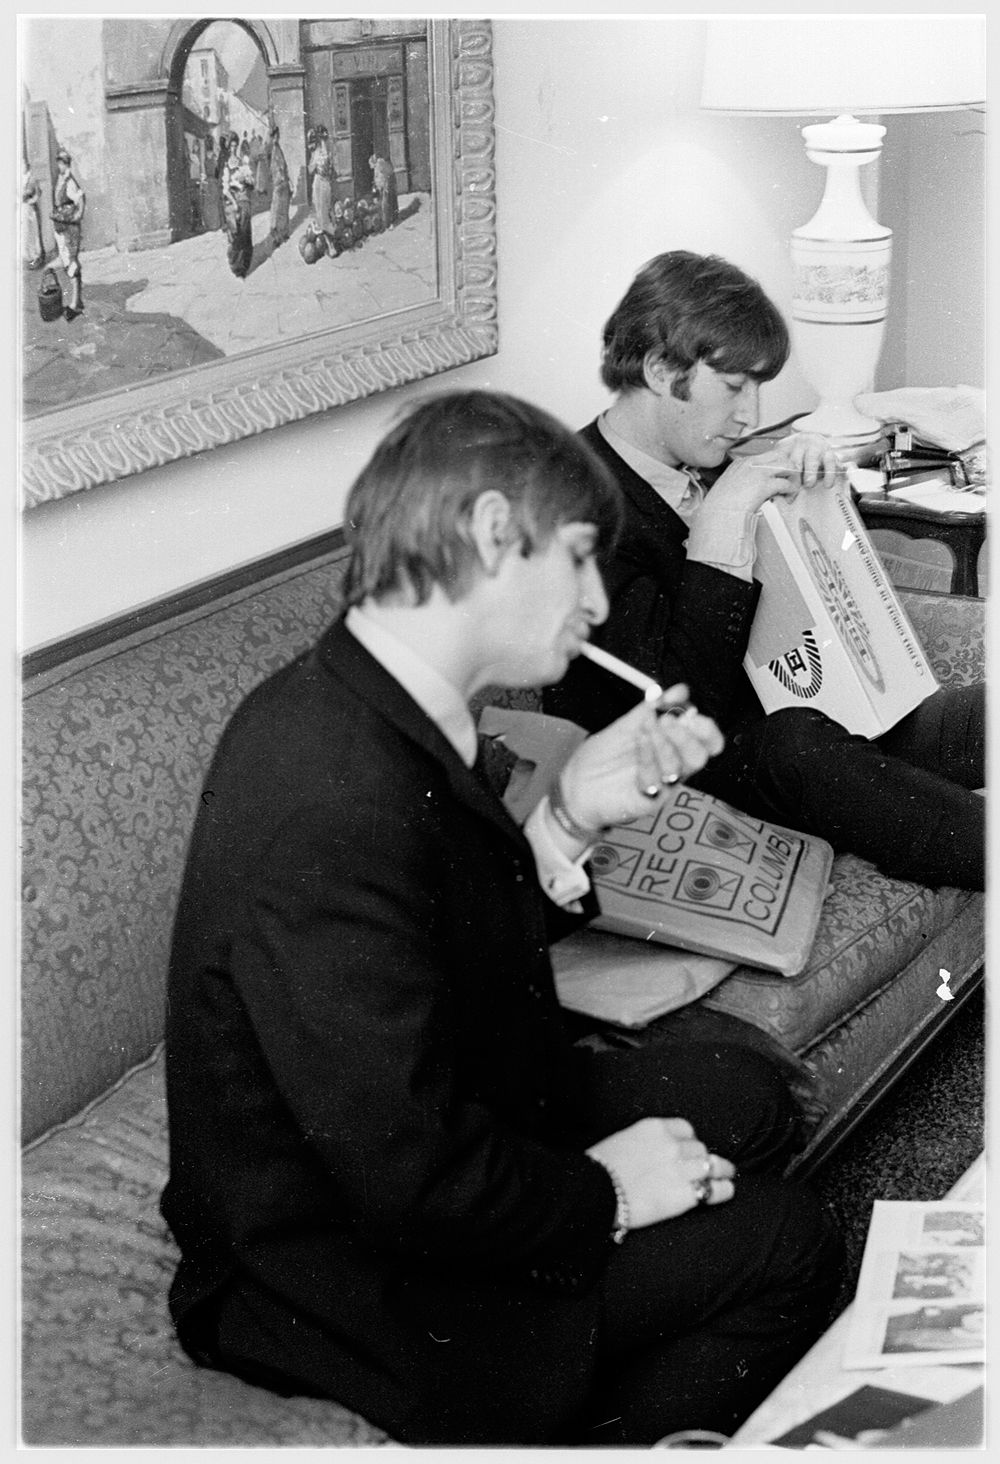 at the Plaza Hotel John and Ringo and their latest stash of free records